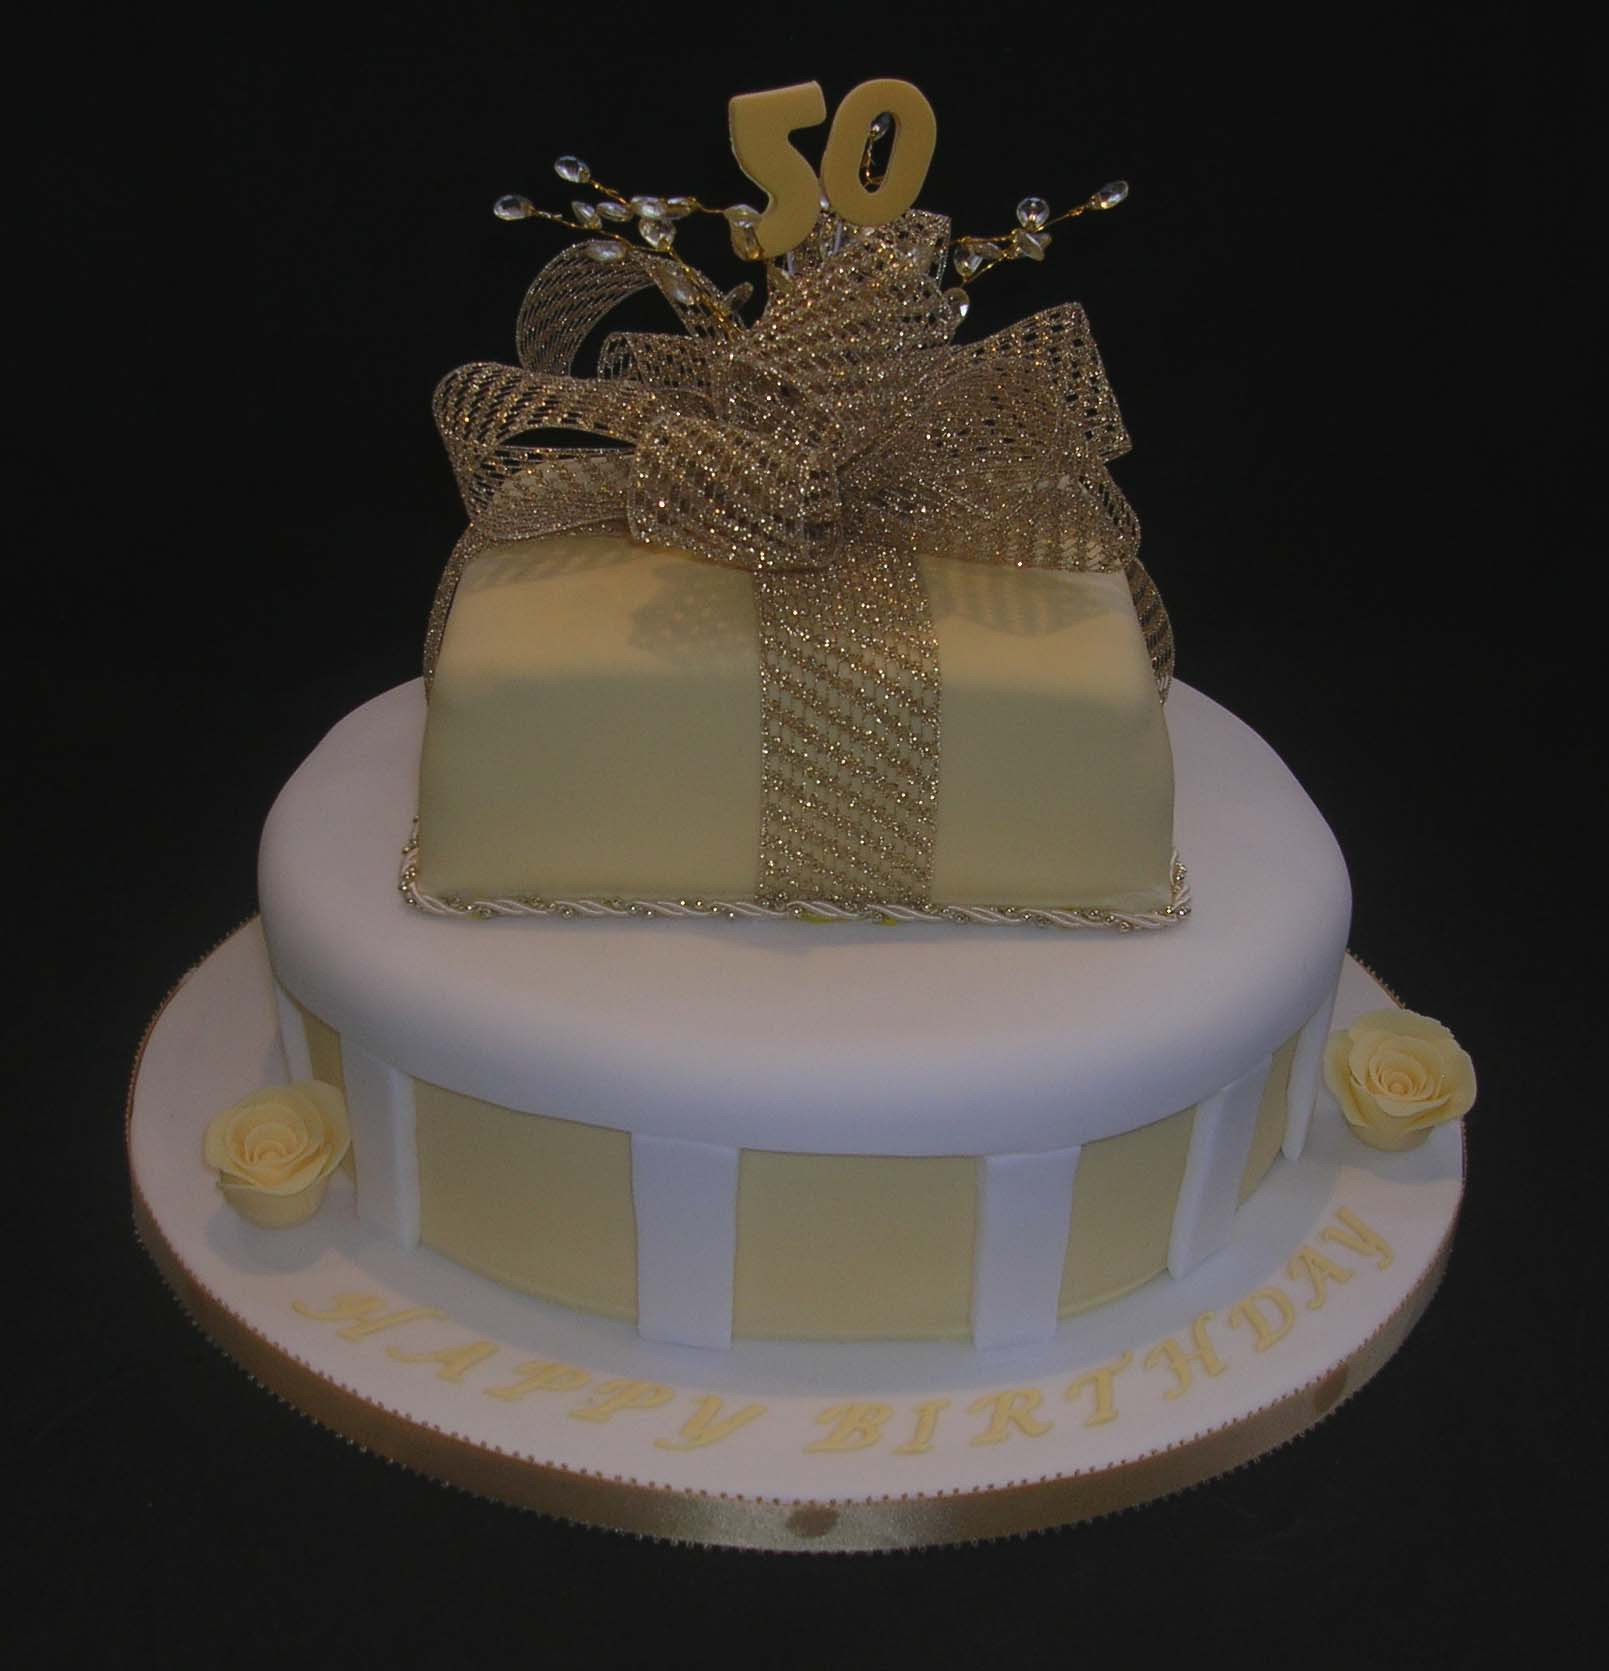 Best ideas about Birthday Cake Designs For Him . Save or Pin 50th birthday cake ideas Now.